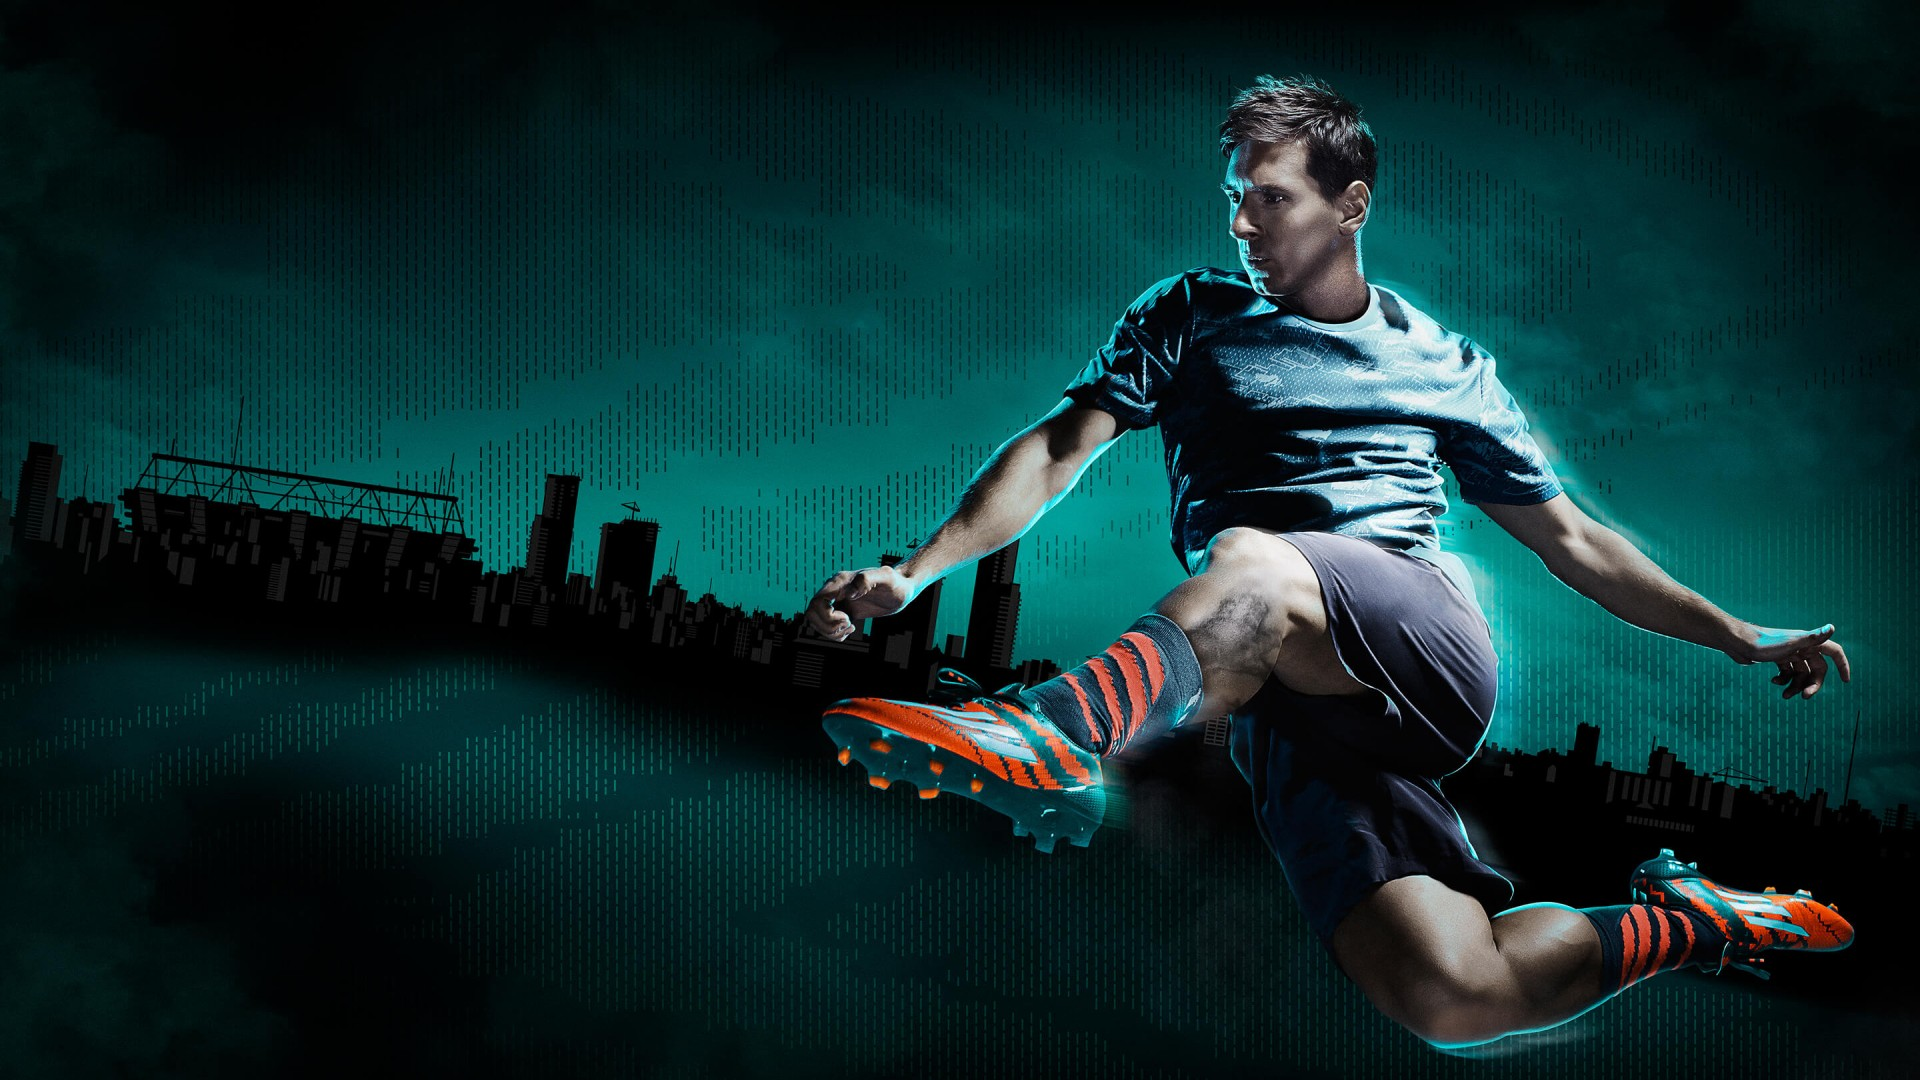 Lionel Messi Adidas Commercial Wallpaper for Desktop 1920 x 1080 1920x1080